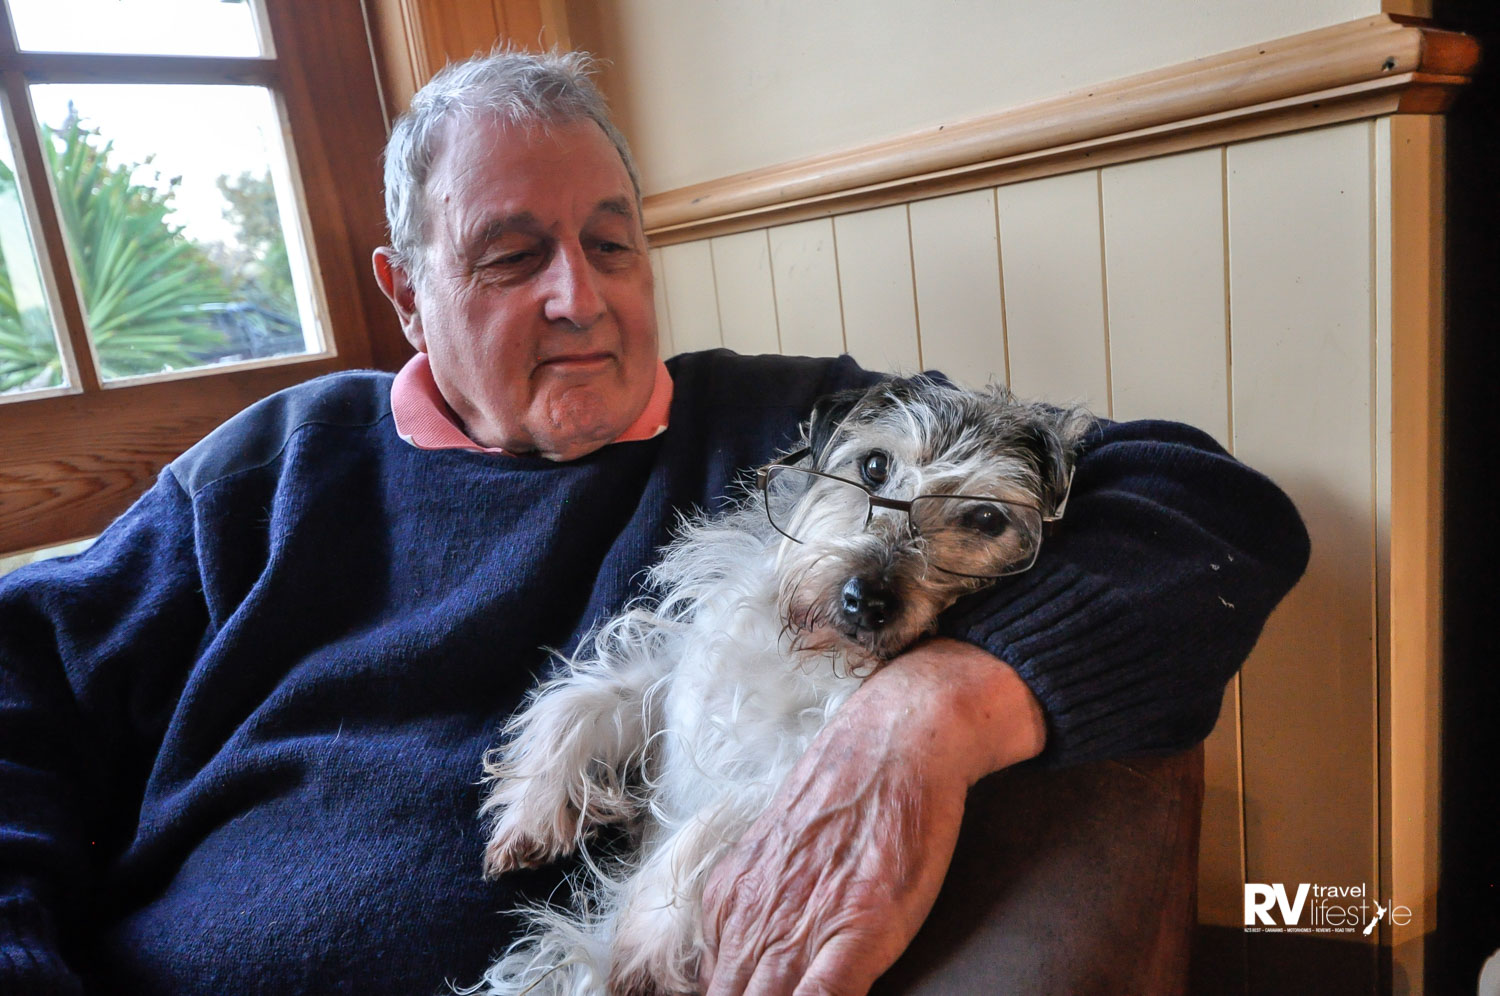 Another older friend we visited – Jacko with his dad John in Blenheim